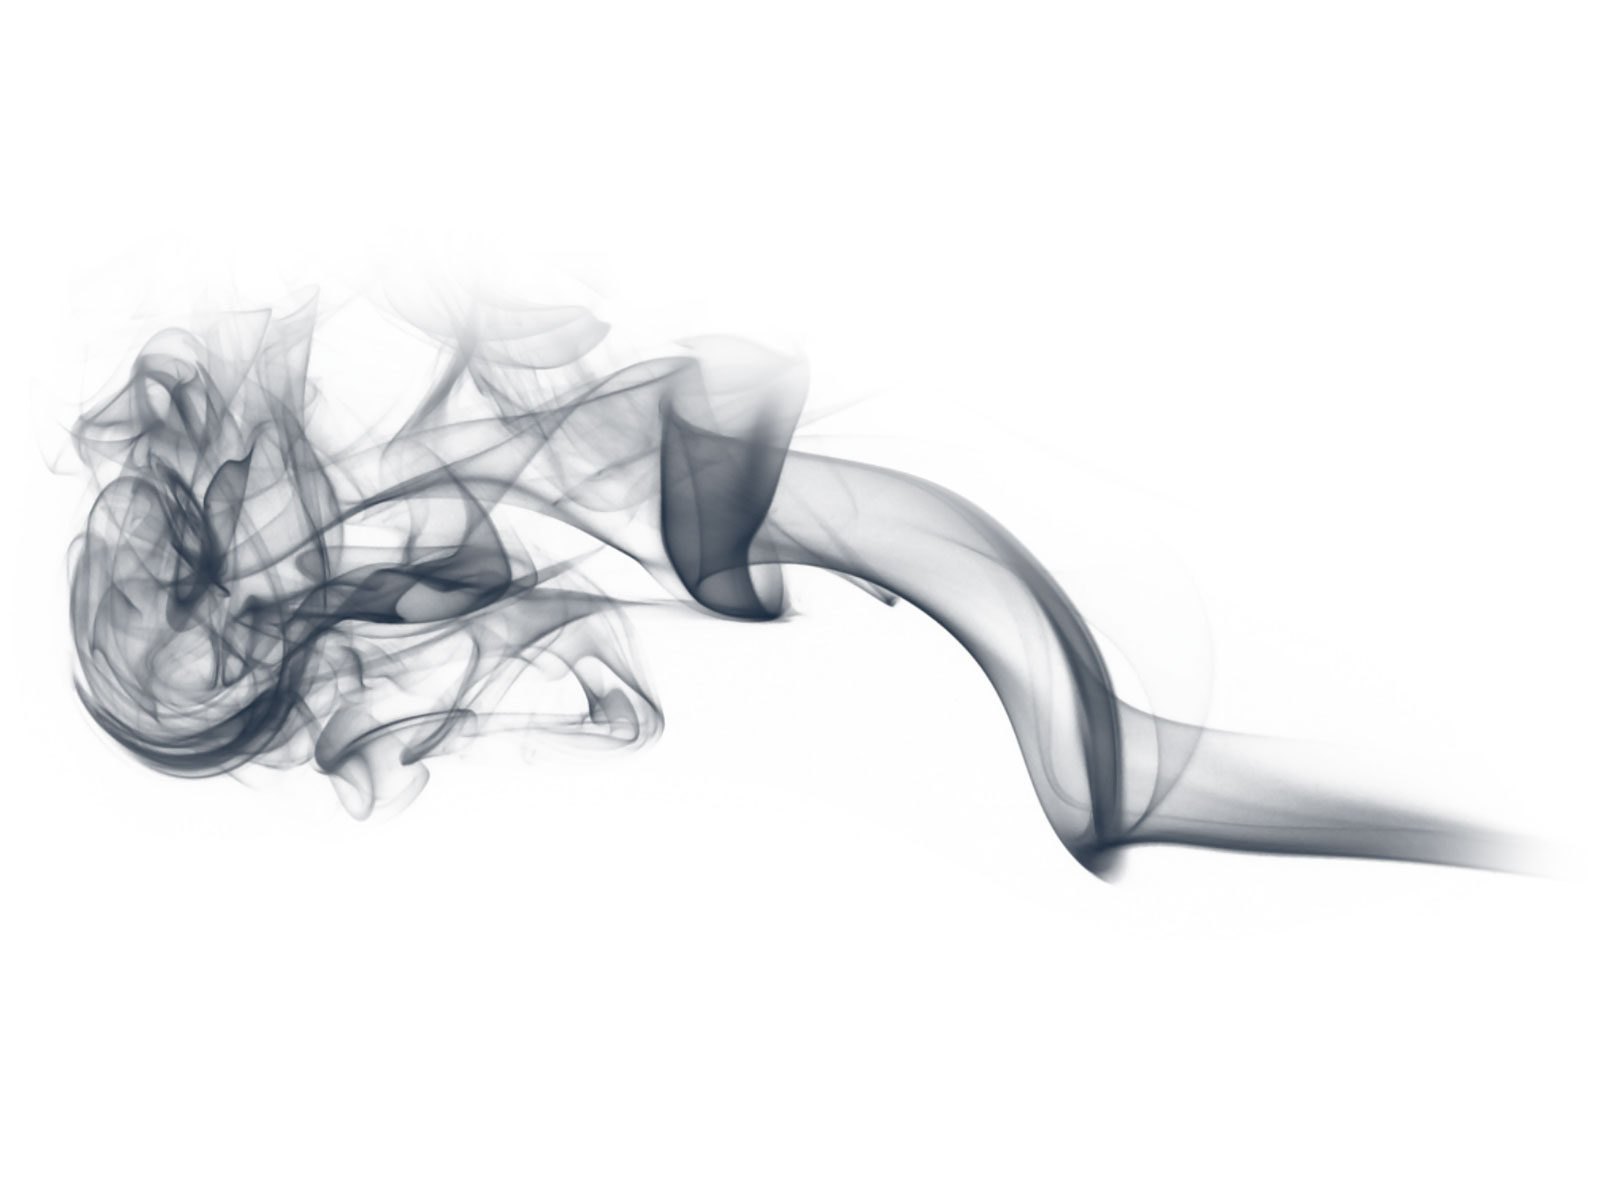 20 Smoke PSD Brushes Images